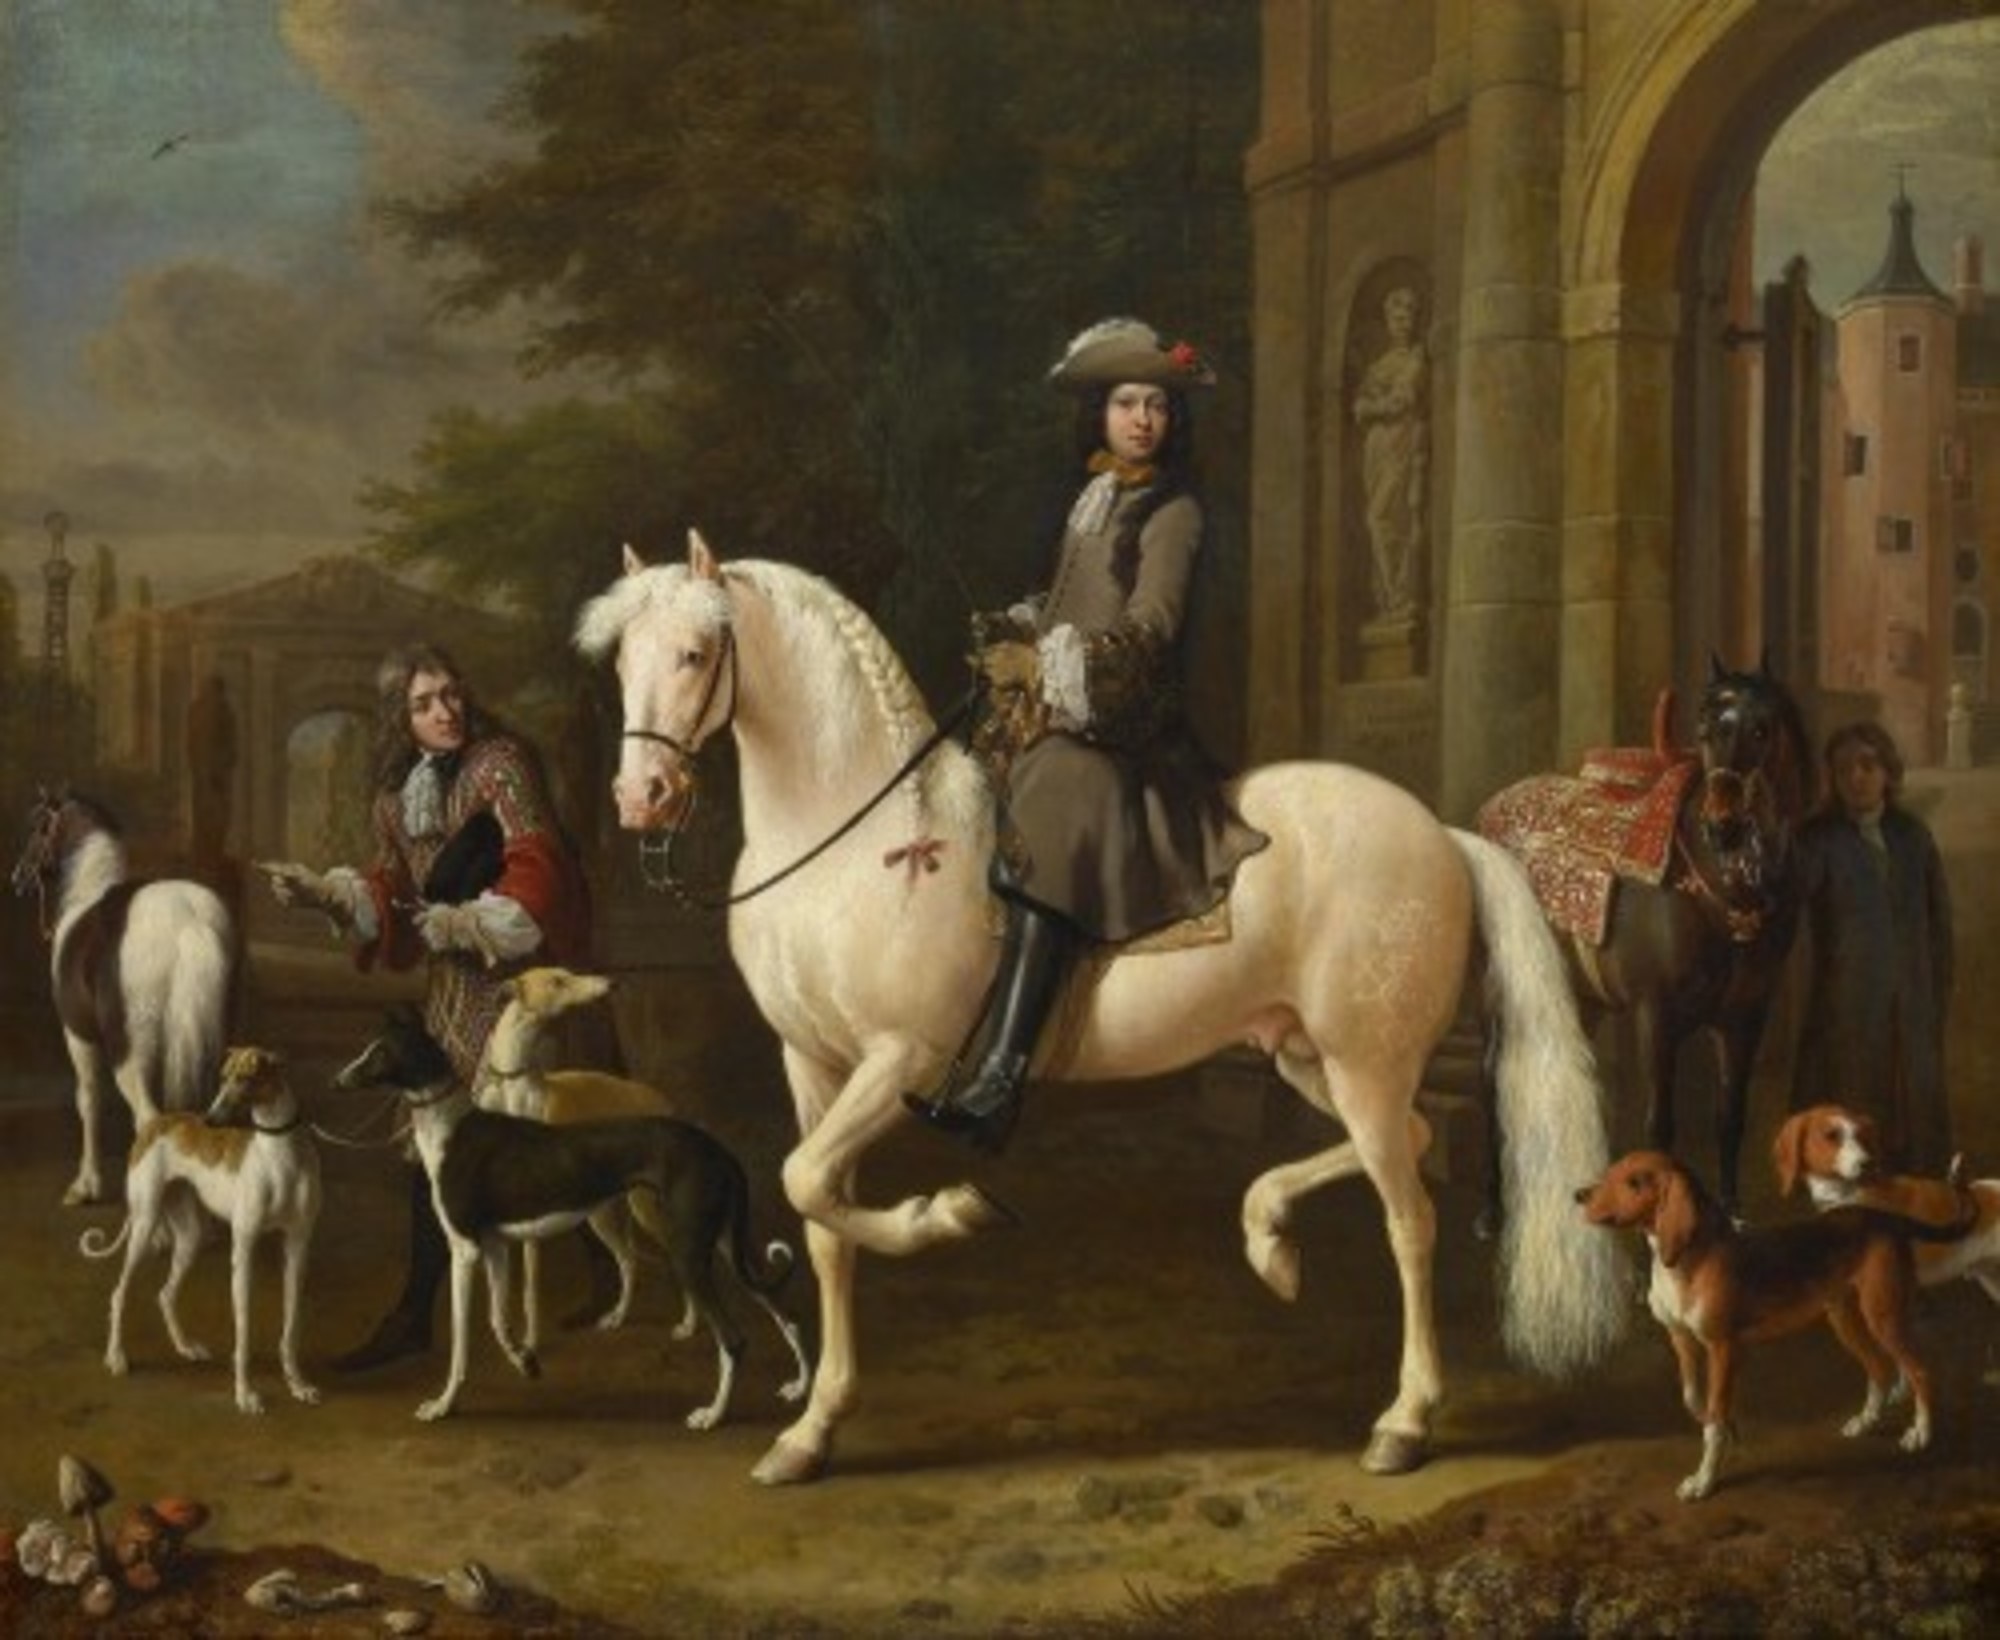 Melchior-dHondecoeter---Johan-Ortt-1642-1701-on-Horseback-outside-the-Gate-of-Nijenrode-RCIN-405956.jpg